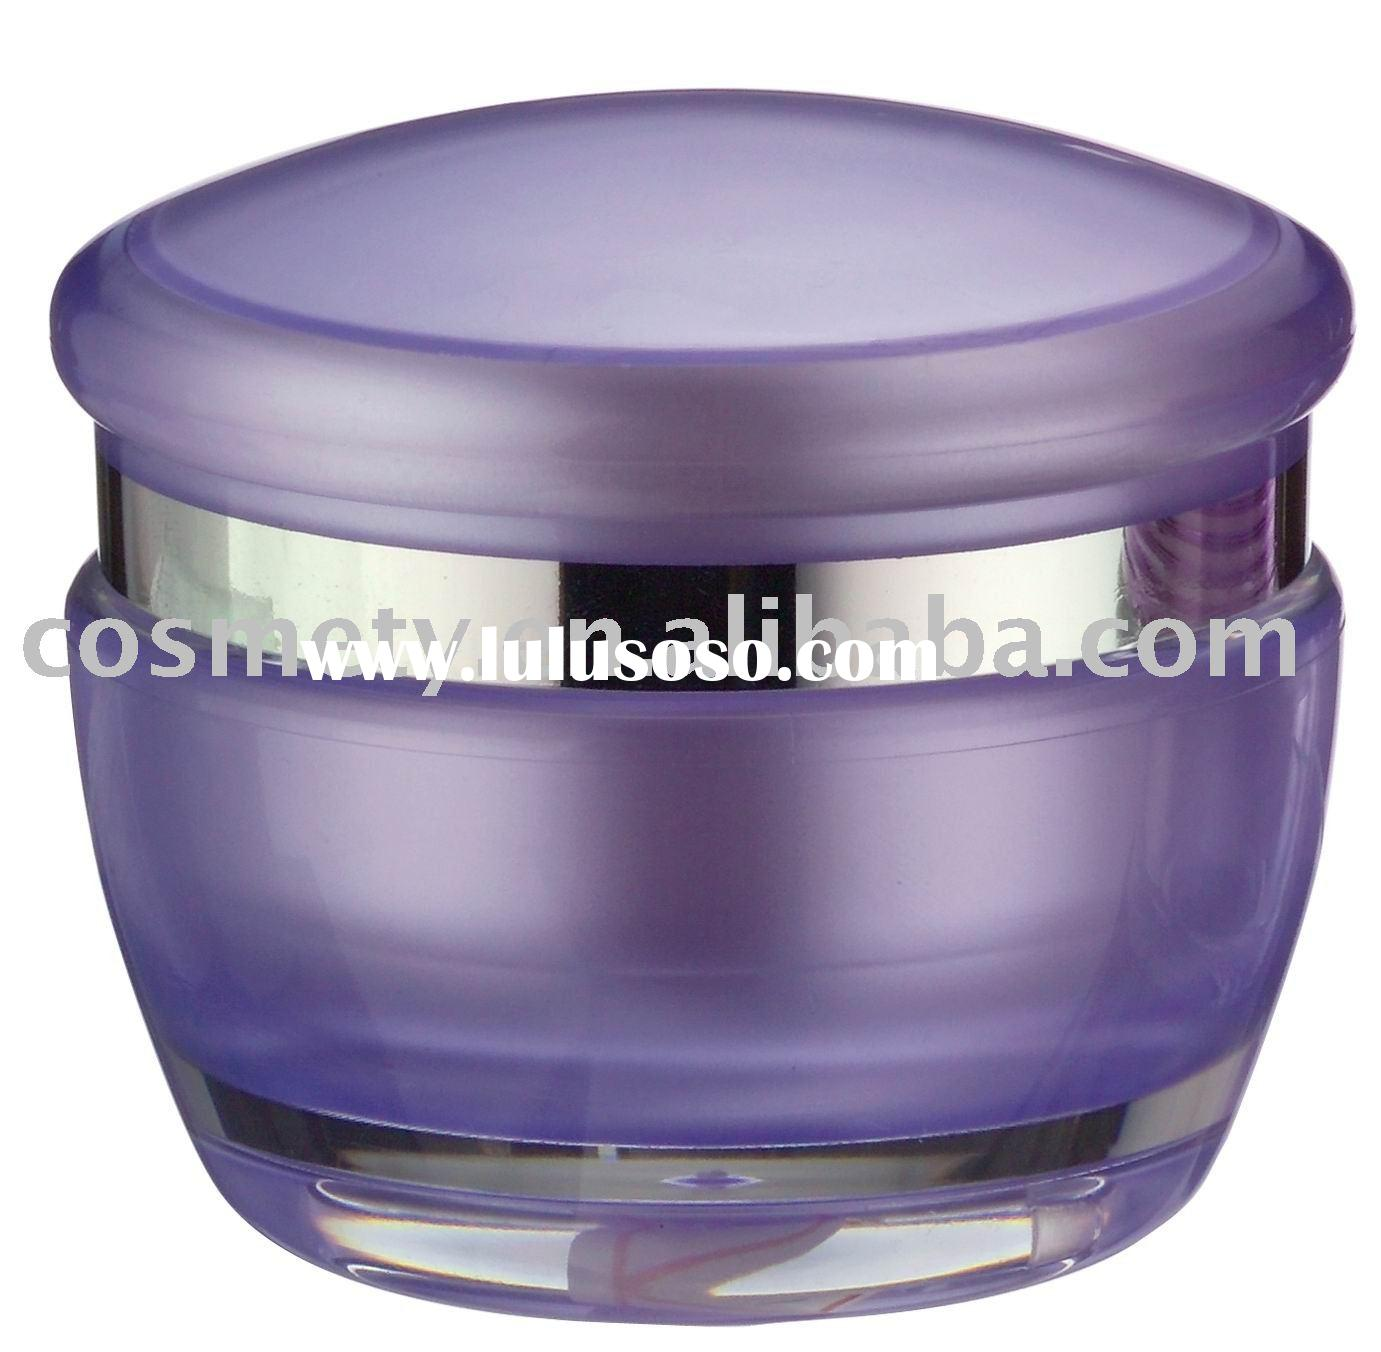 PMMA Material Round Shape Skin Care Cream Jar Packaging